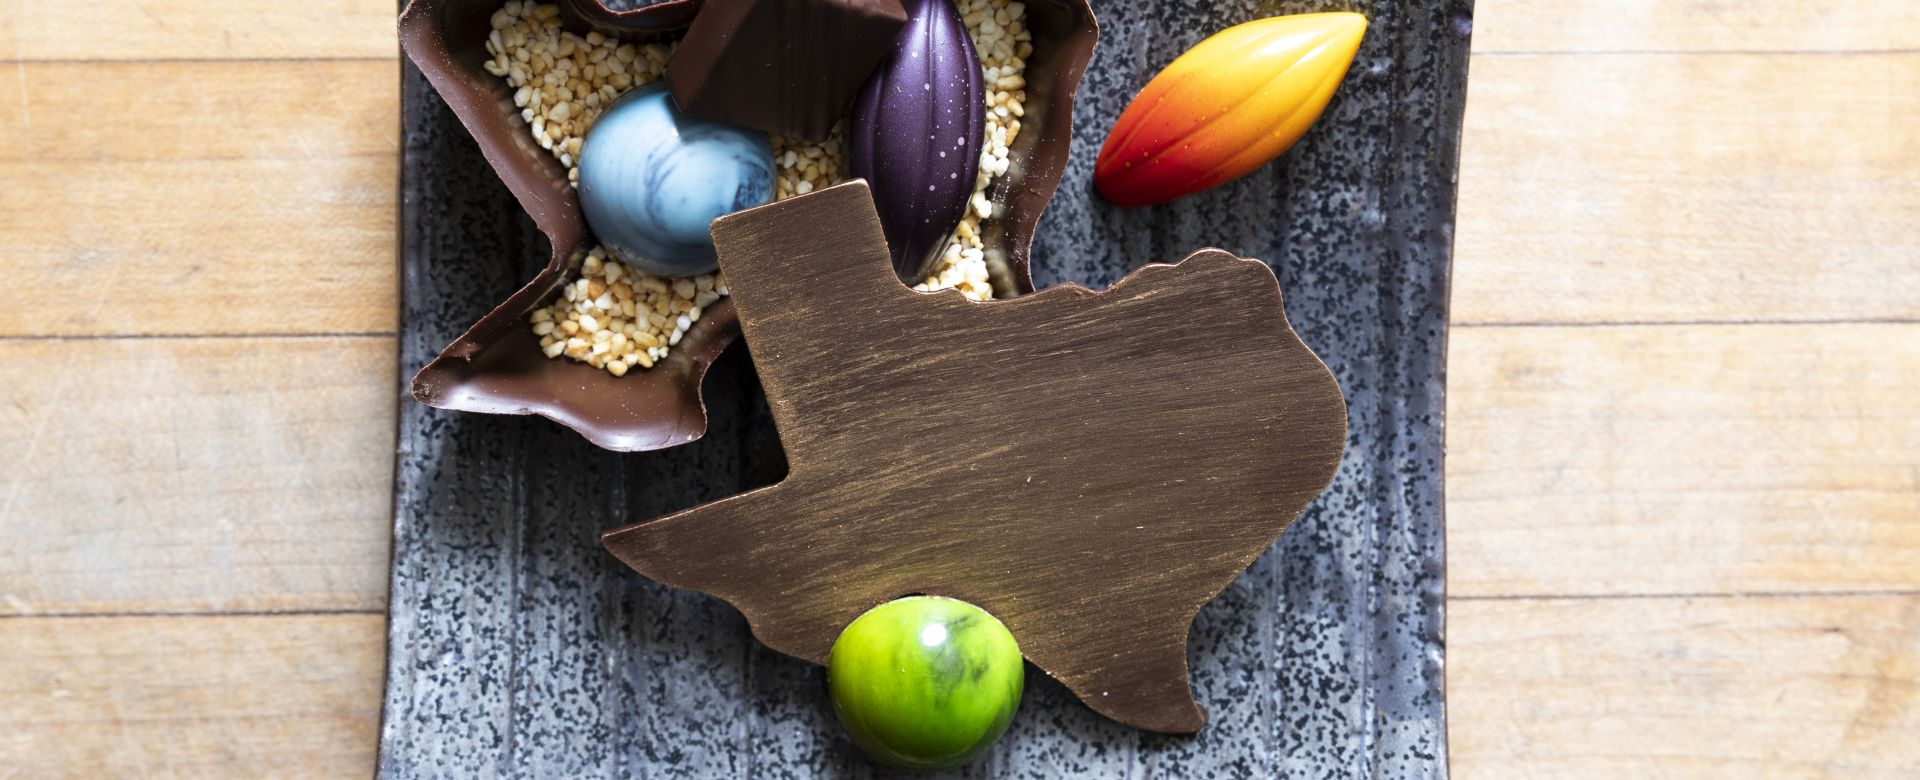 A chocolate in the shape of Texas.